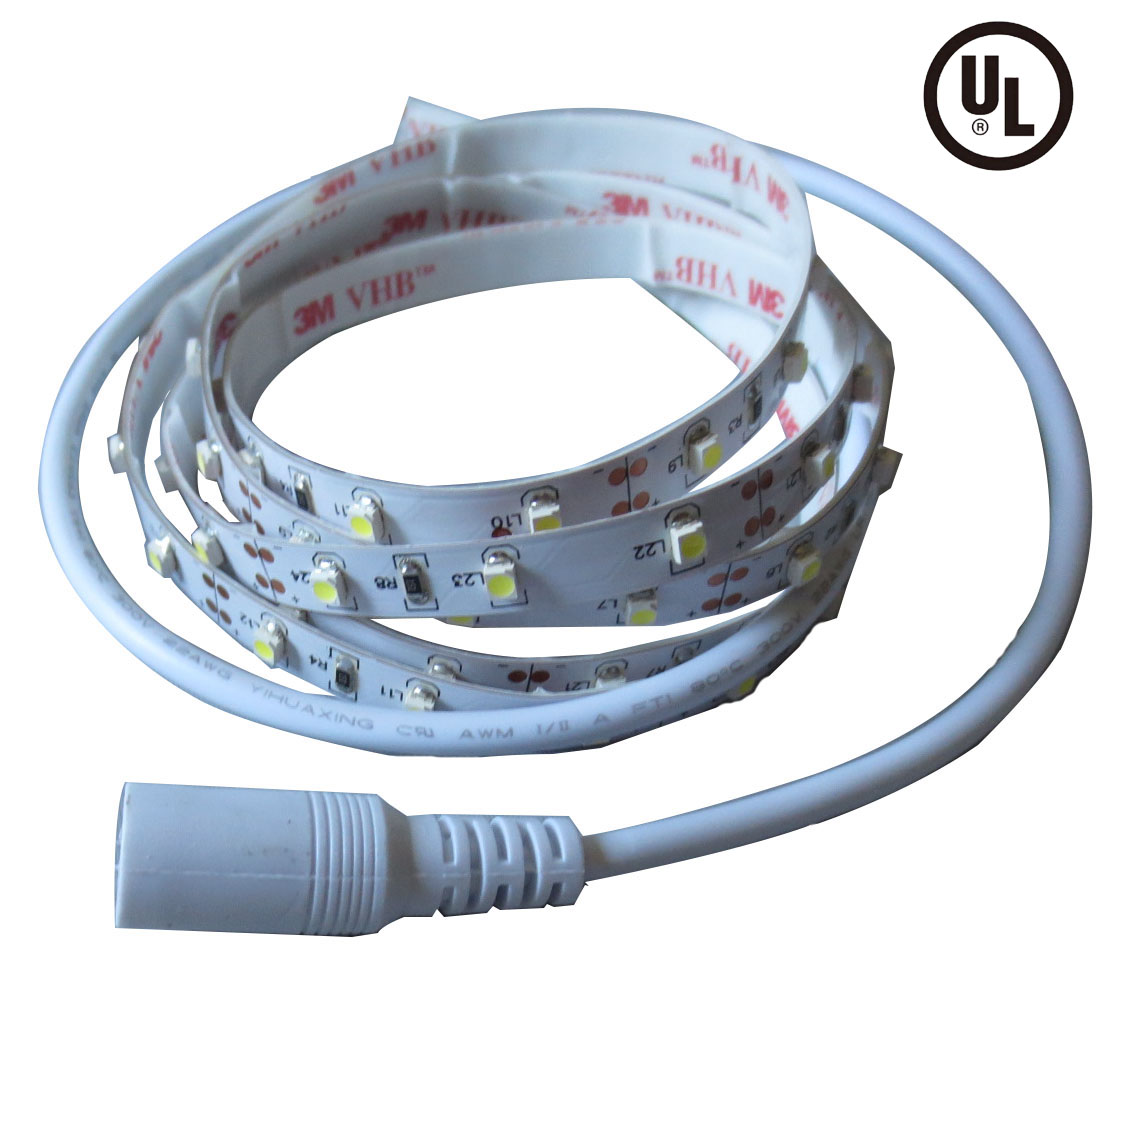 smd3528 led strip 60led/m UL led strip